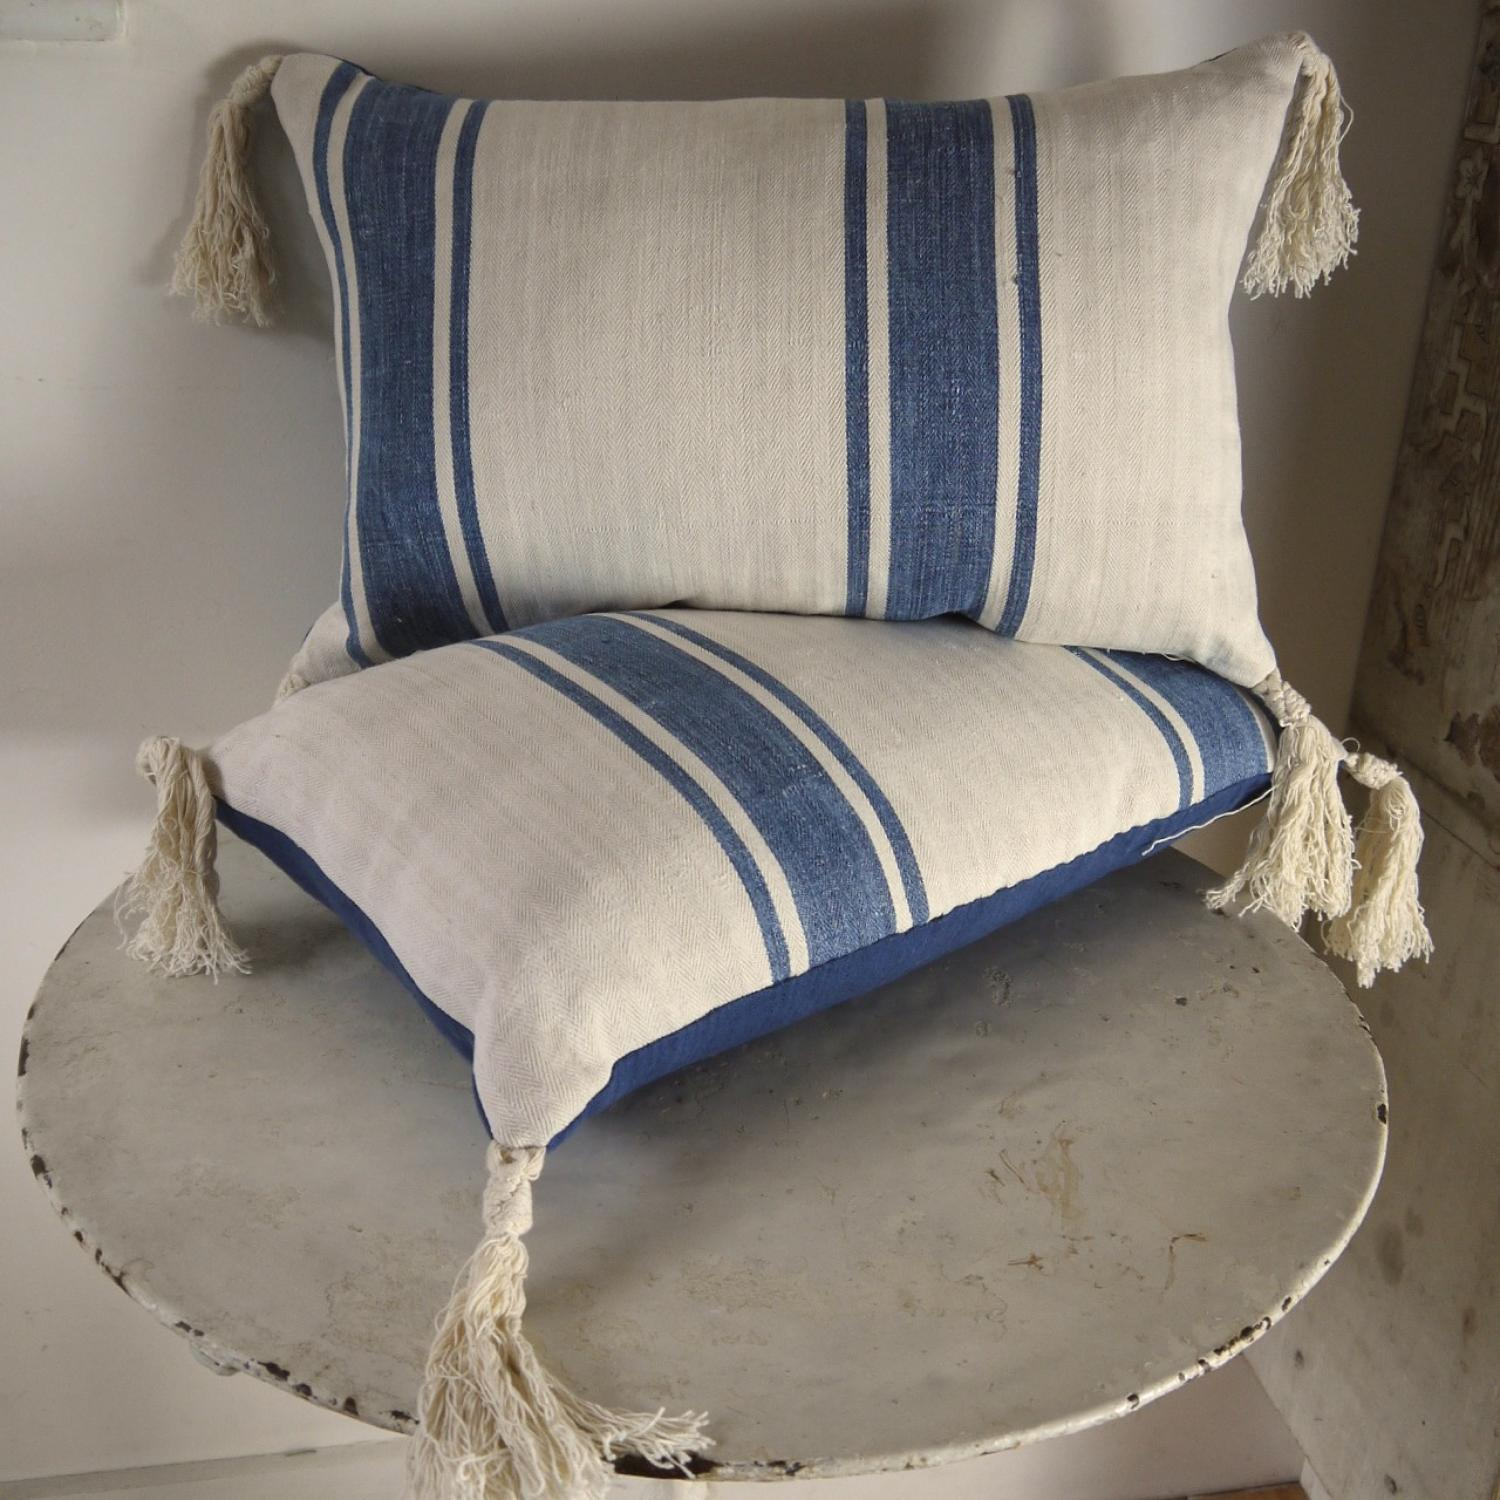 Pair of French Indigo Striped Linen Cushions